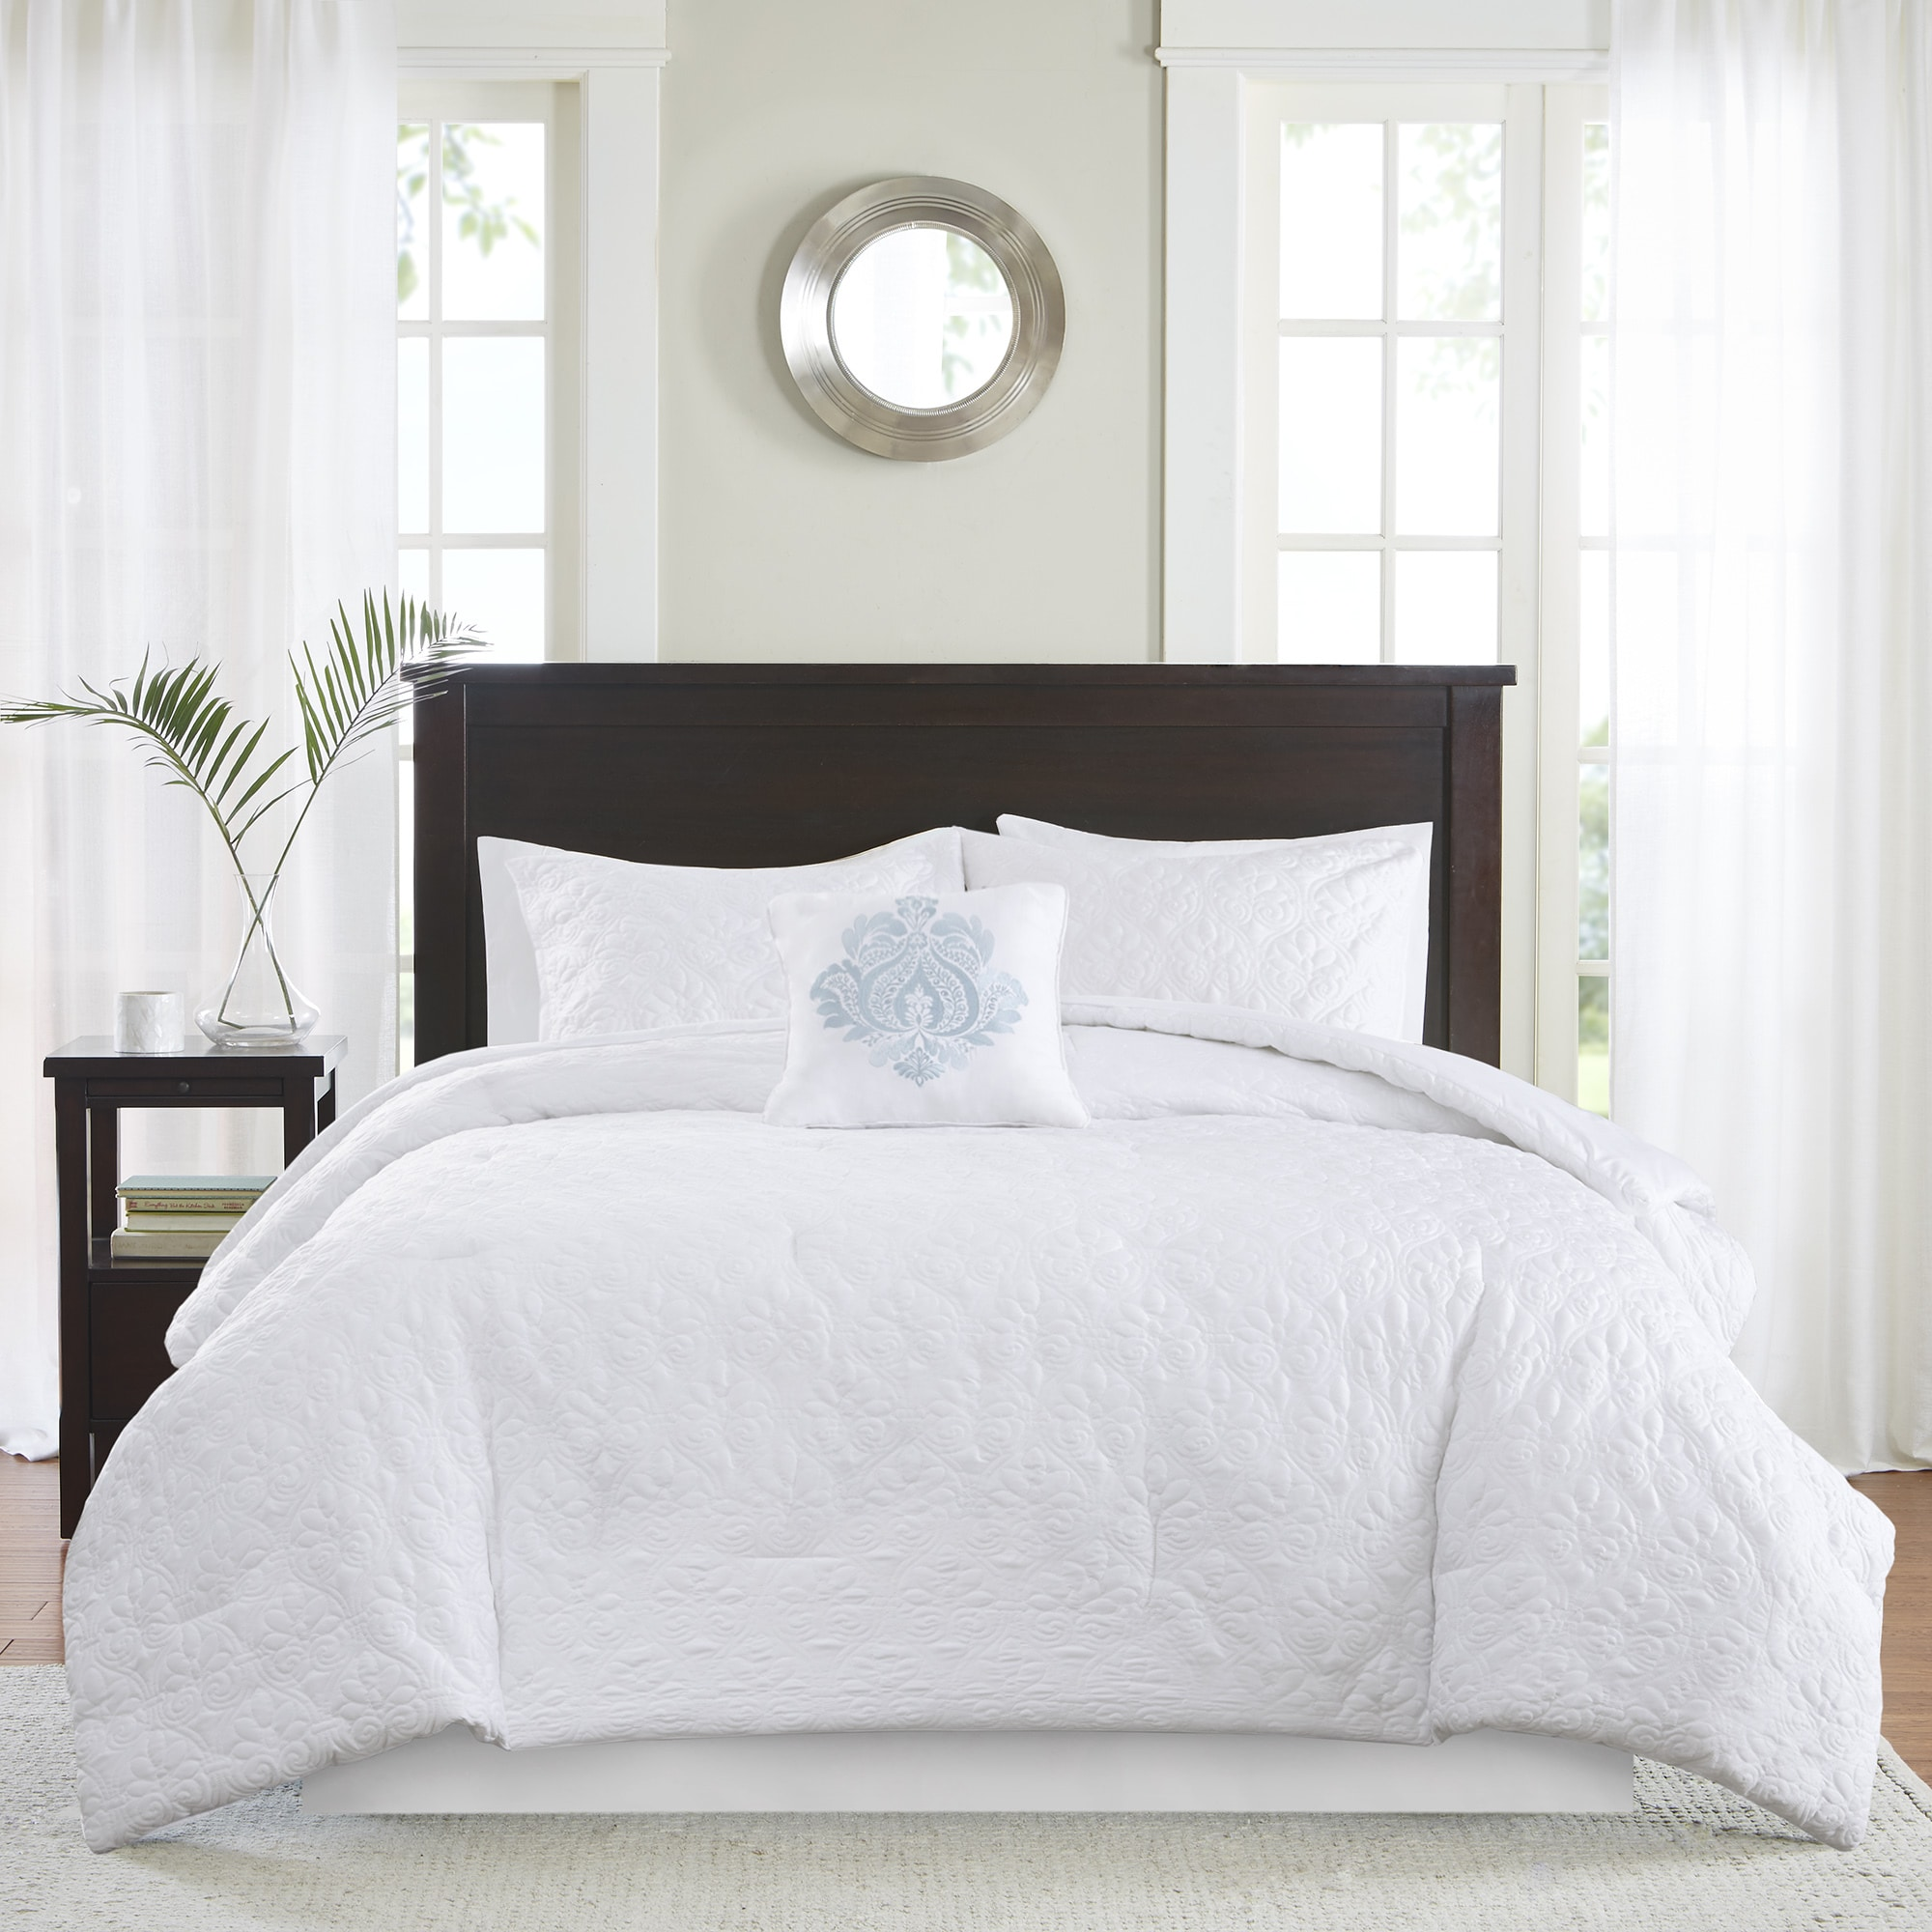 madison park mansfield quilted white comforter set  free shipping  - madison park mansfield quilted white comforter set  free shipping today overstockcom